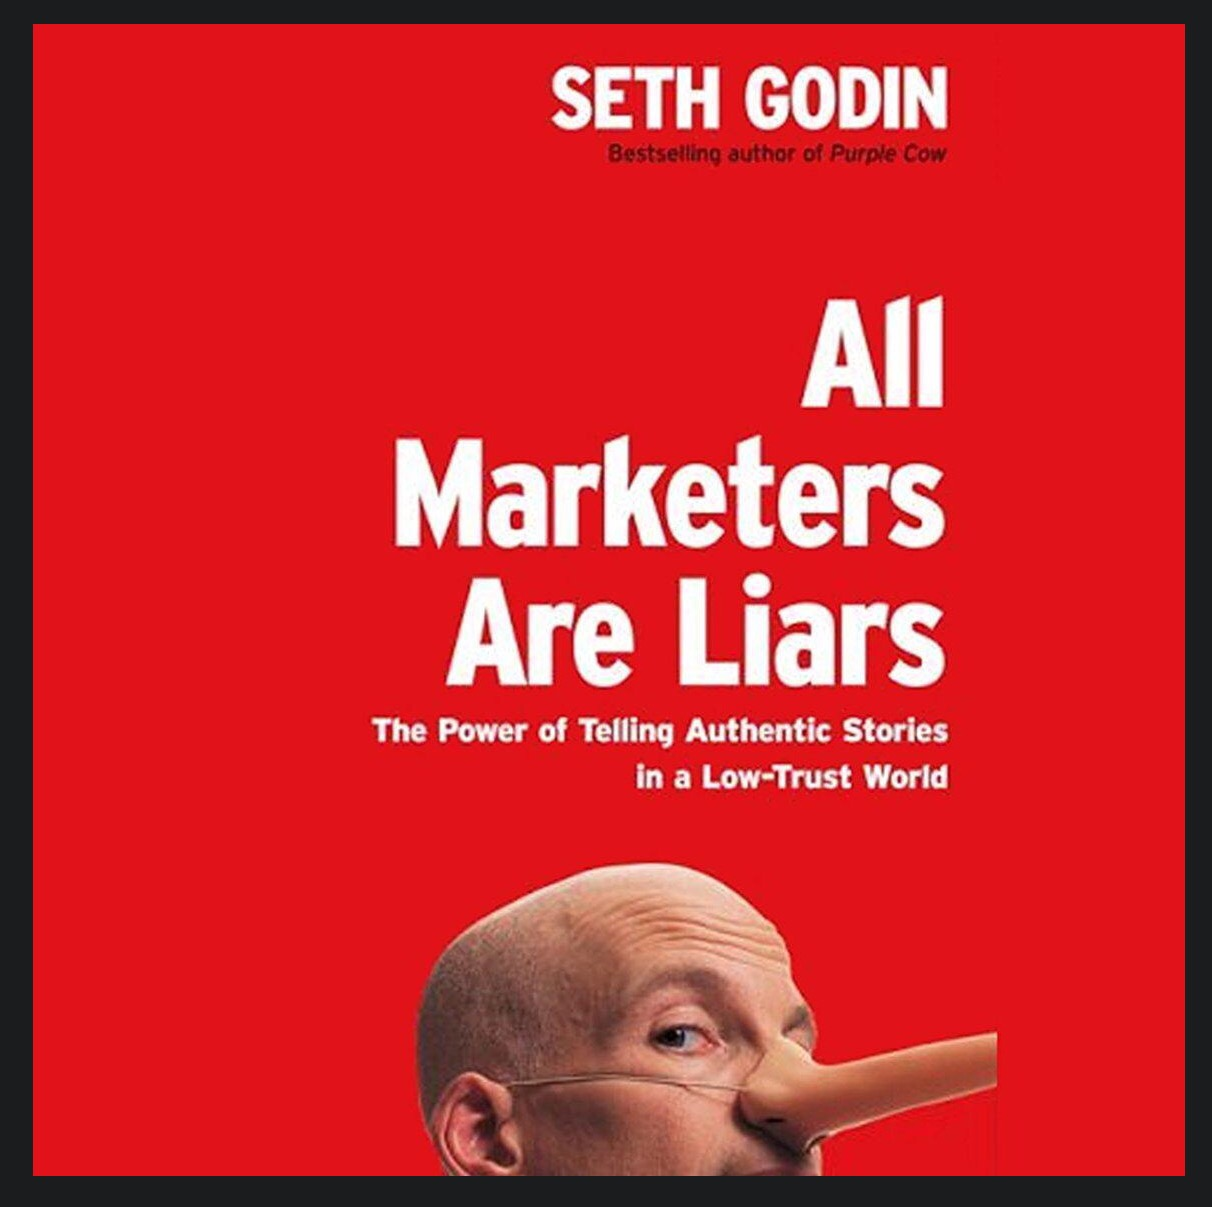 all marketers are not liars essay All marketers are liars quotes (showing 1-18 of 18) we drink the can, not the beverage ― seth godin, all marketers are liars: the power of telling authentic stories in a low-trust world.